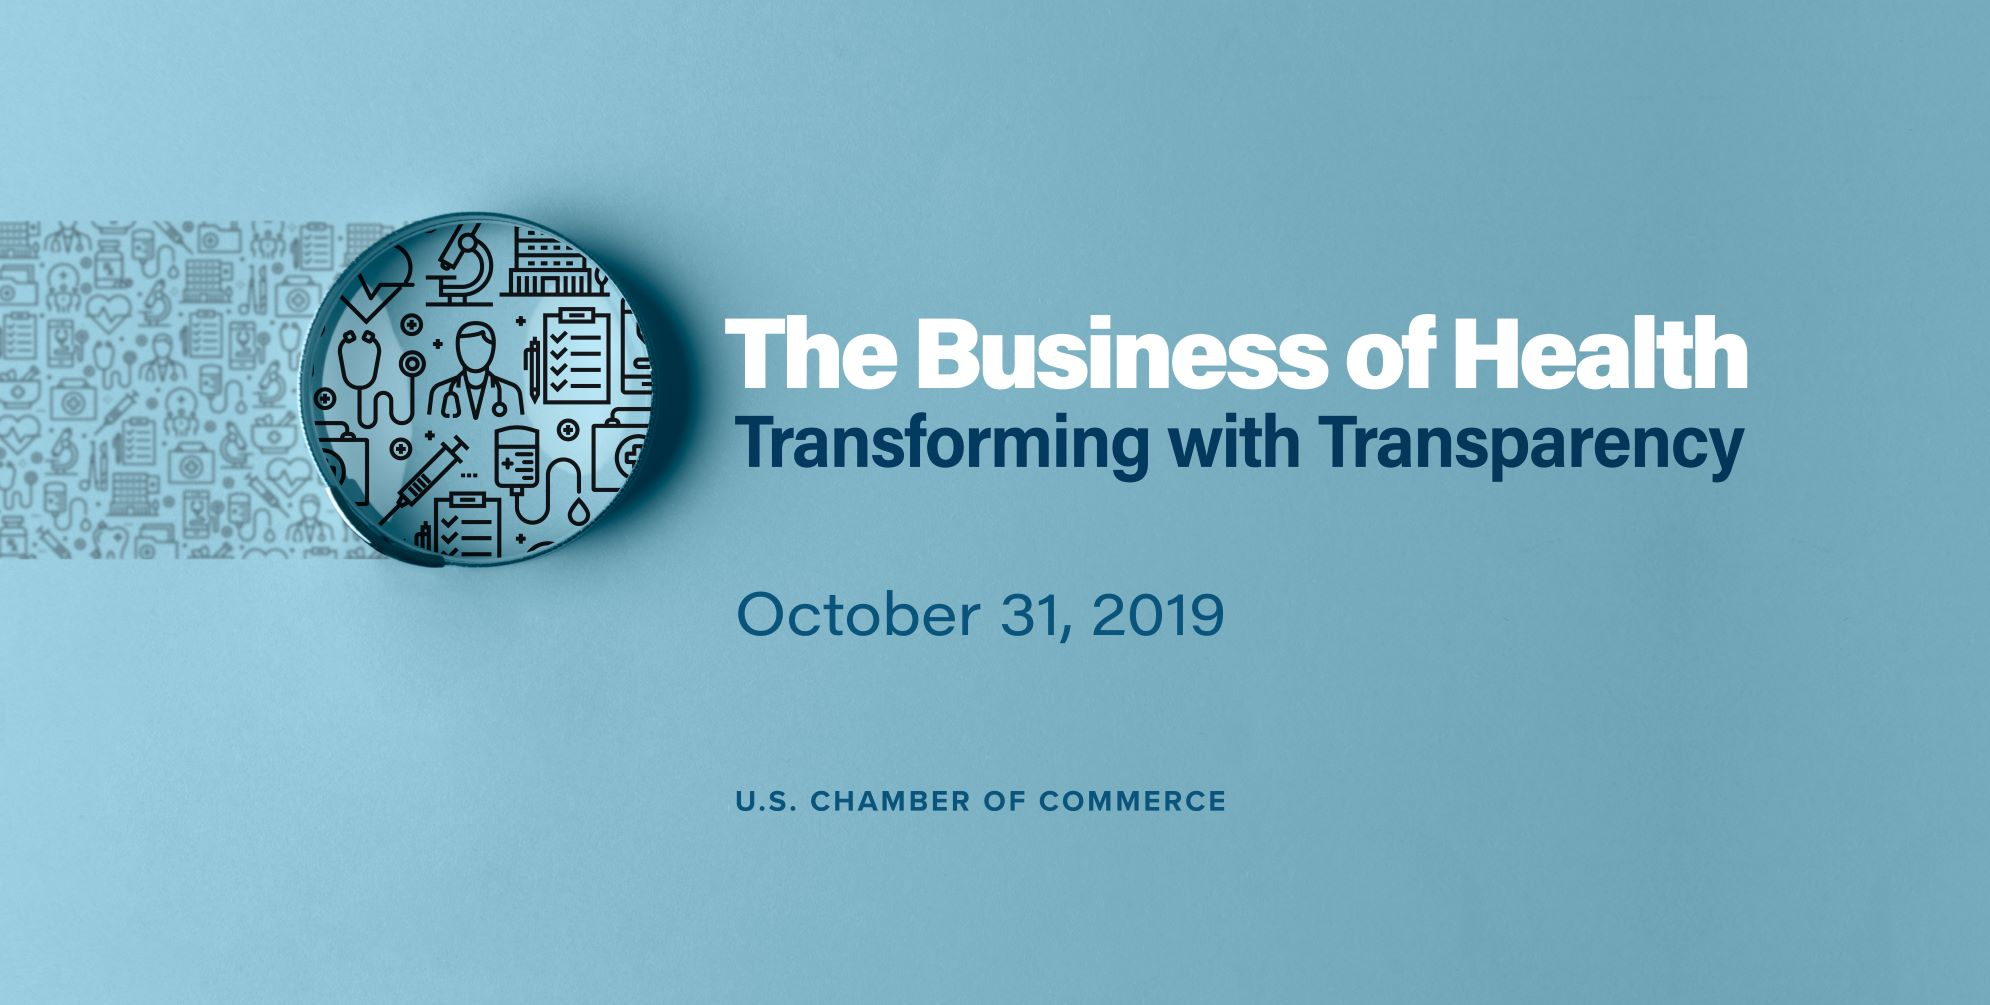 The Business of Health: Transforming with Transparency